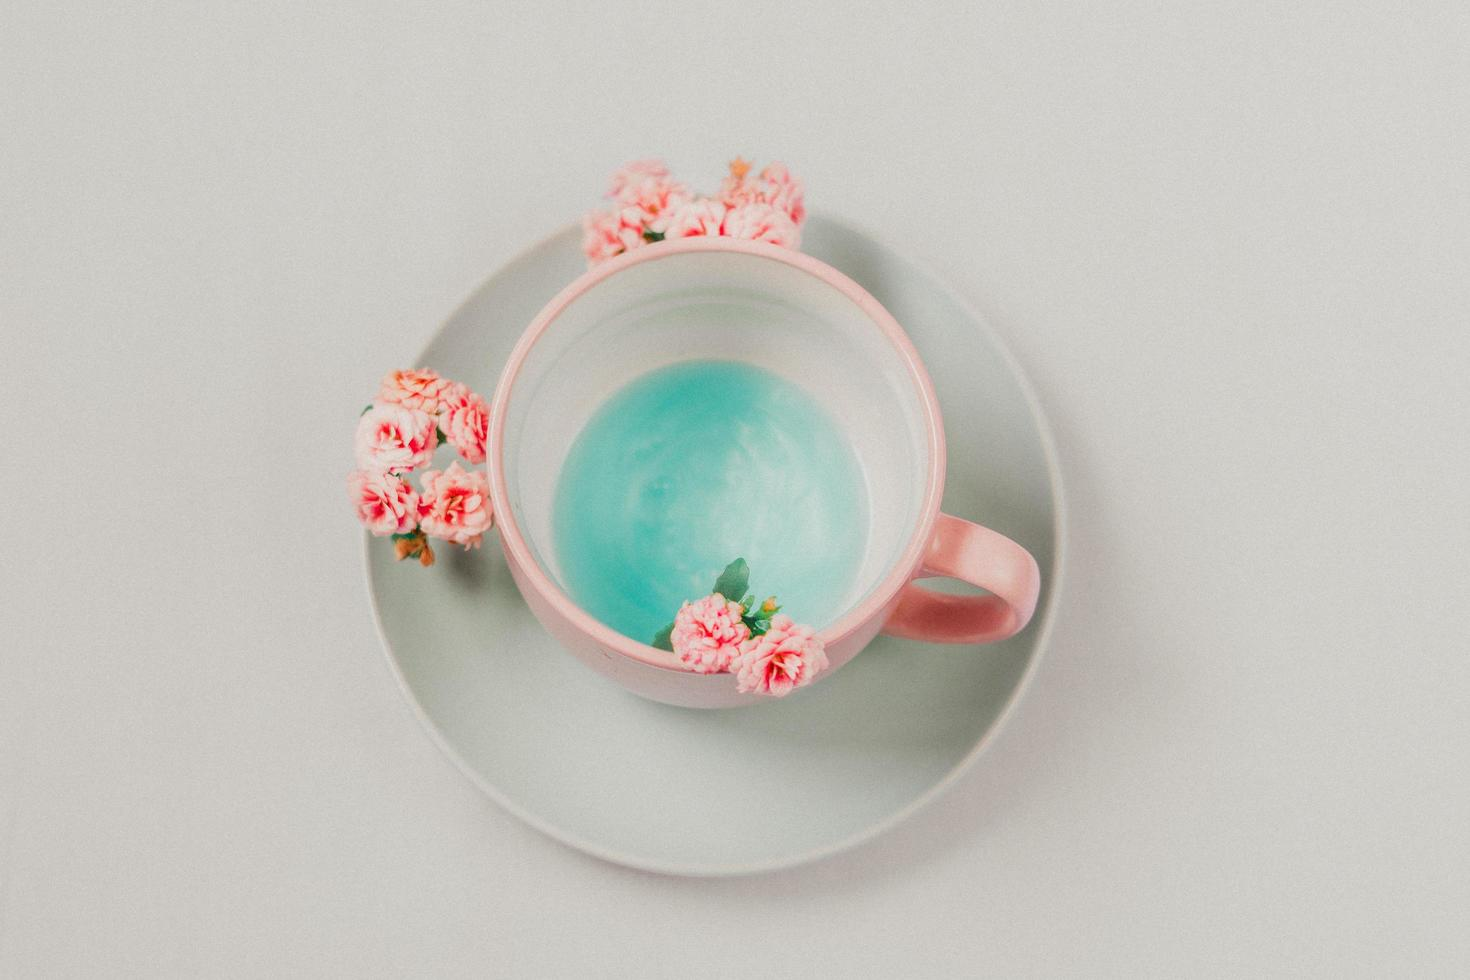 Cup and saucer on neutral background photo